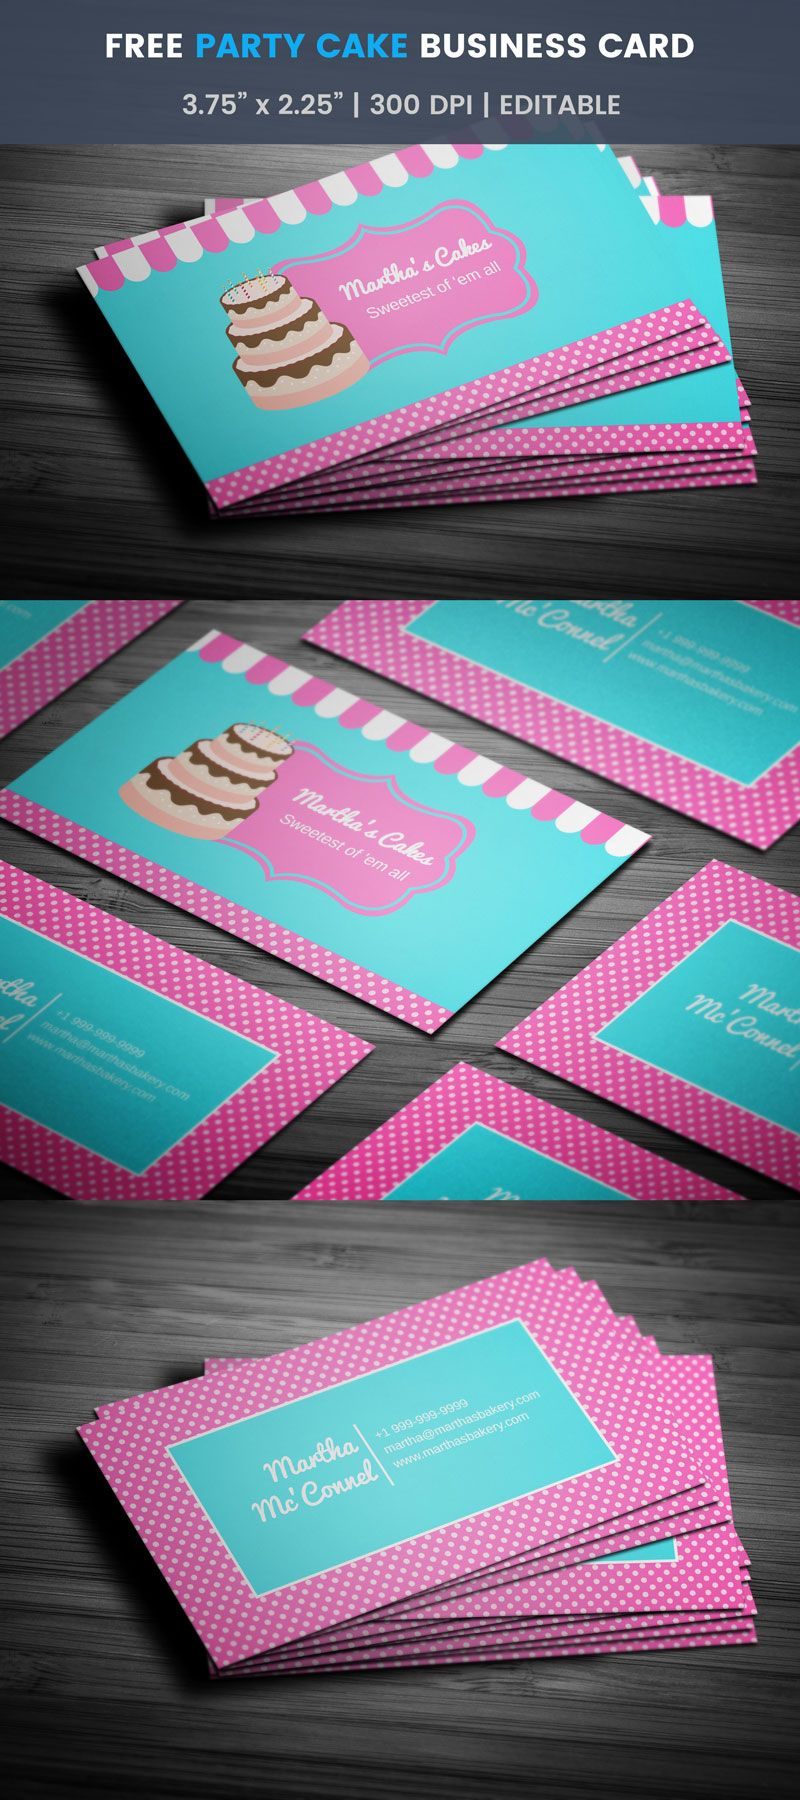 Party cake themed bakery business card full preview free bakery party cake themed bakery business card full preview accmission Gallery